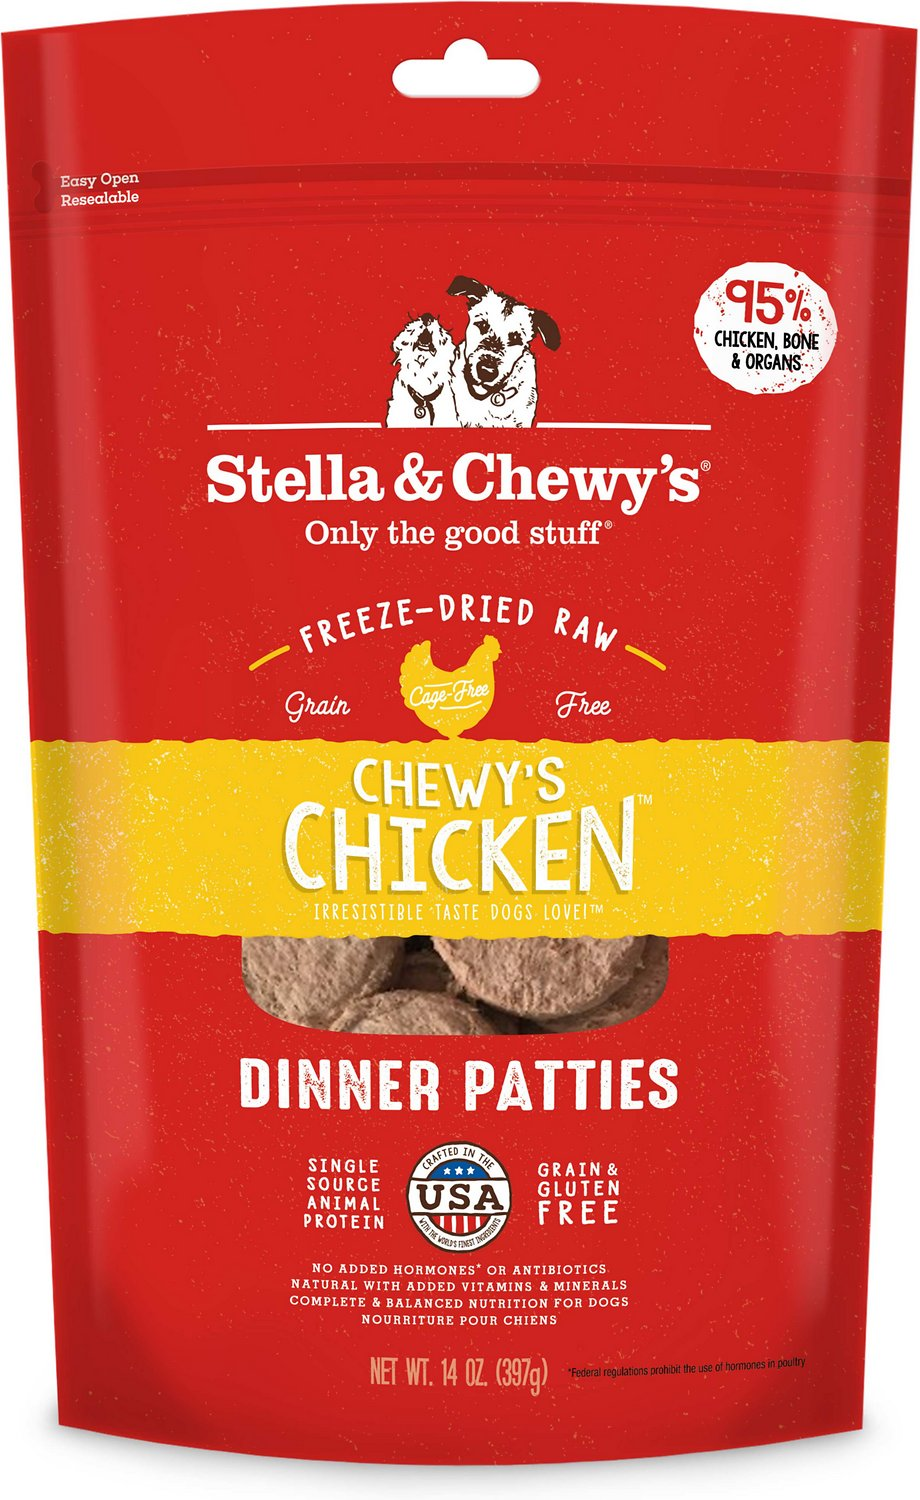 Stella & Chewy's Chewy's Chicken Dinner Patties Grain-Free Freeze-Dried Dog Food Image